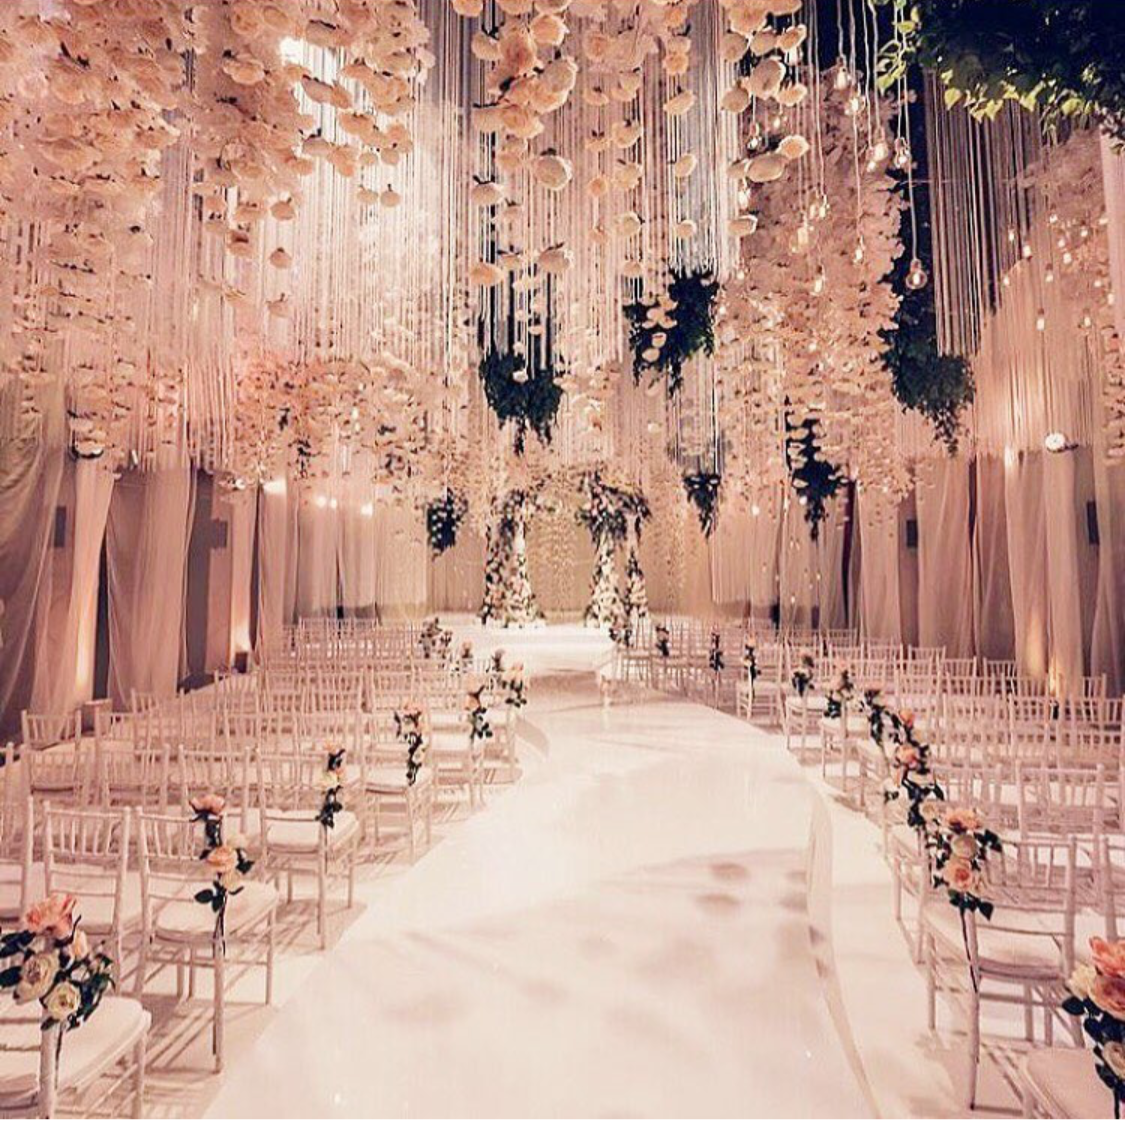 Wedding decorations hanging from trees  Pin by DanaMarie Capporelli on Wedding Inspiration  Pinterest